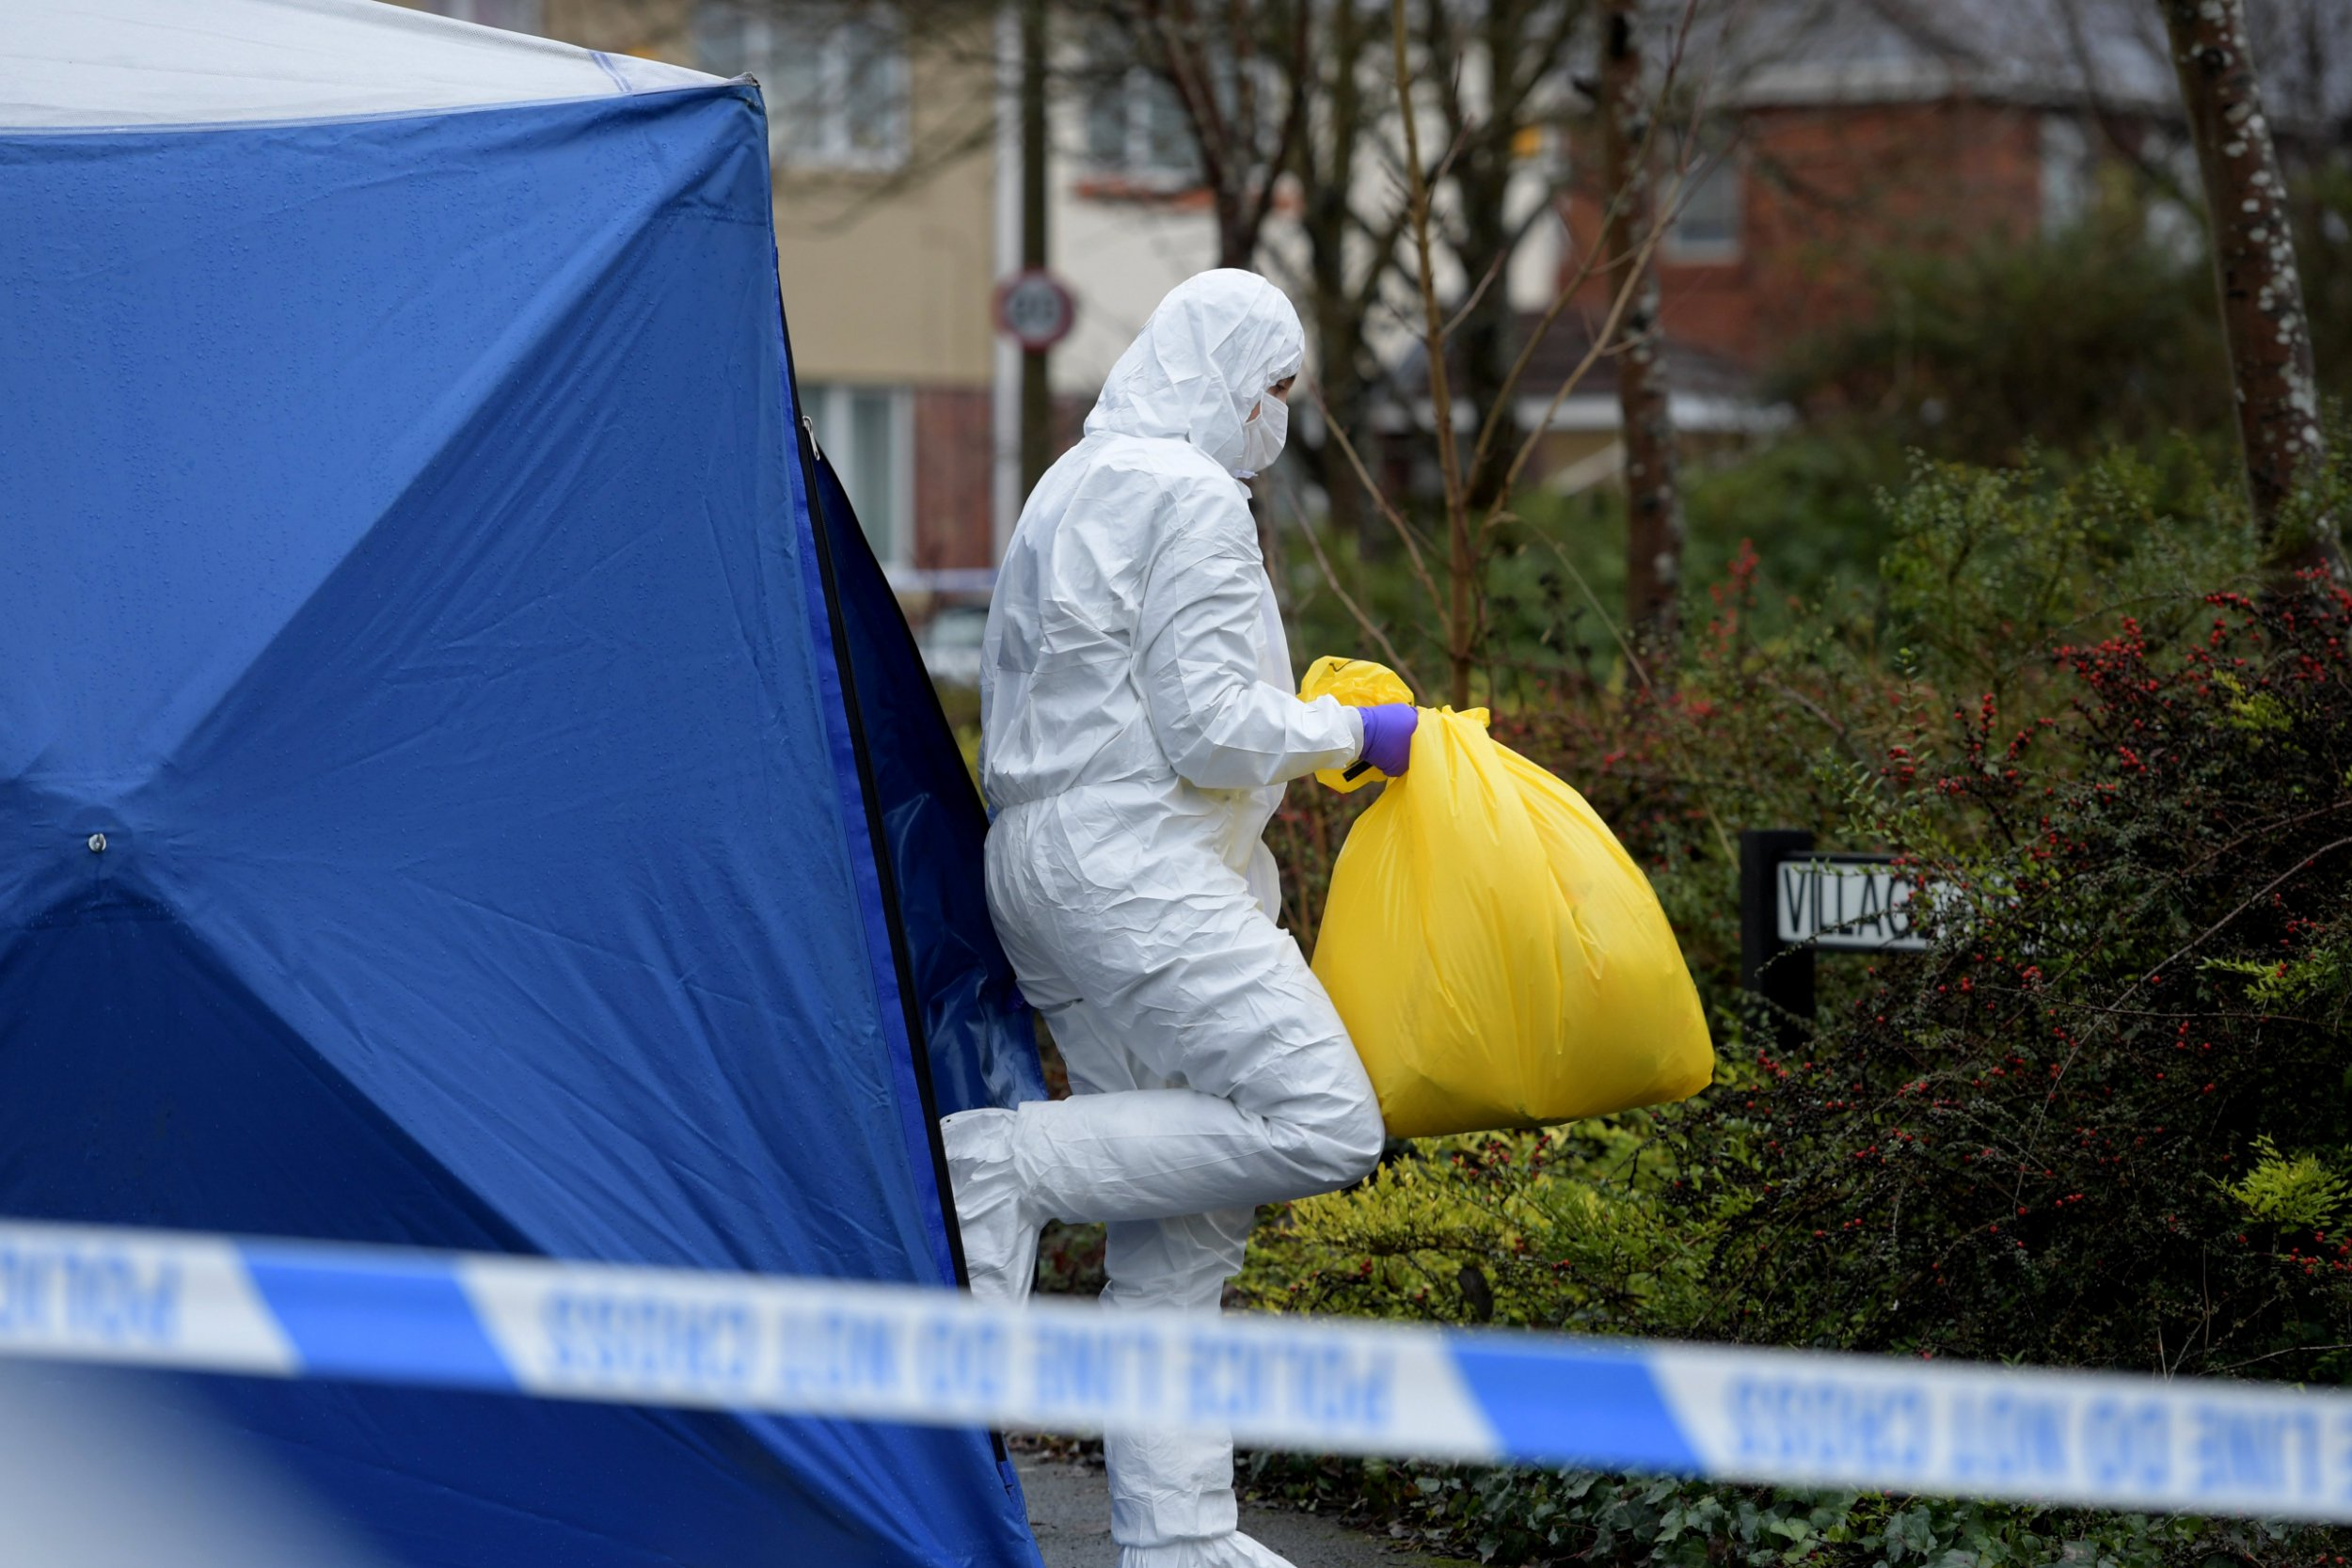 """The murder scene at the junction of Village Drive and Pope Lane in Ribbleton, Preston where a woman was brutally murdered, February 7 2019. The body was apparently so badly beaten that investigating officers originally, wrongly identified the body as a man. See SWNS story SWLEwoman; A murder investigation has been launched following the death of a woman in Preston. Police were called at 2am today (7 February) to reports of an altercation on Pope Lane, Ribbleton. Detectives have described the alleged murder of a woman in Ribbleton as """"brutal"""". Police have not confirmed how the woman died but her injuries are understood to be so extensive that officers were unable to identify her as a woman."""